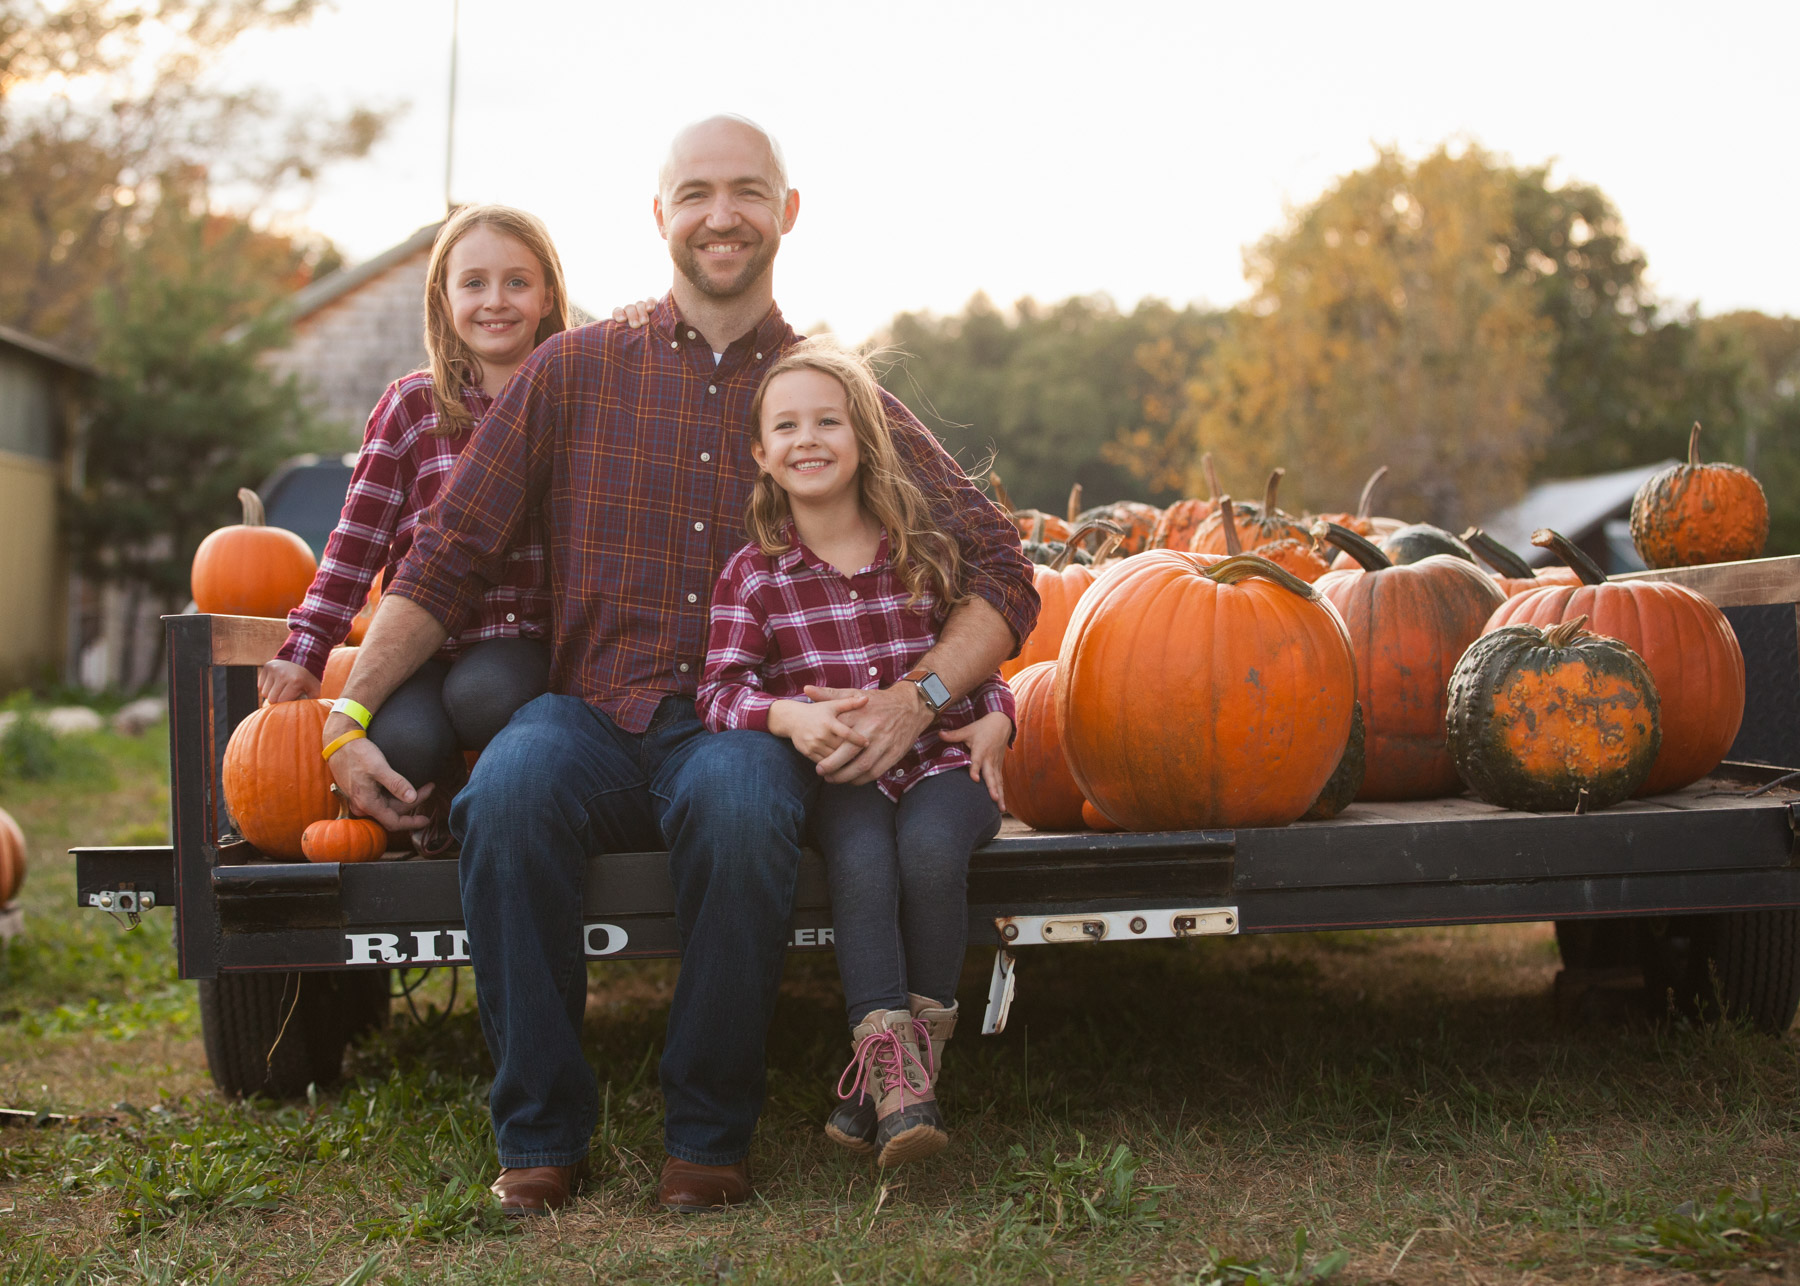 Dad and his two daughters sit on the back of a farm trailer filled with pumpkins just before sunset.